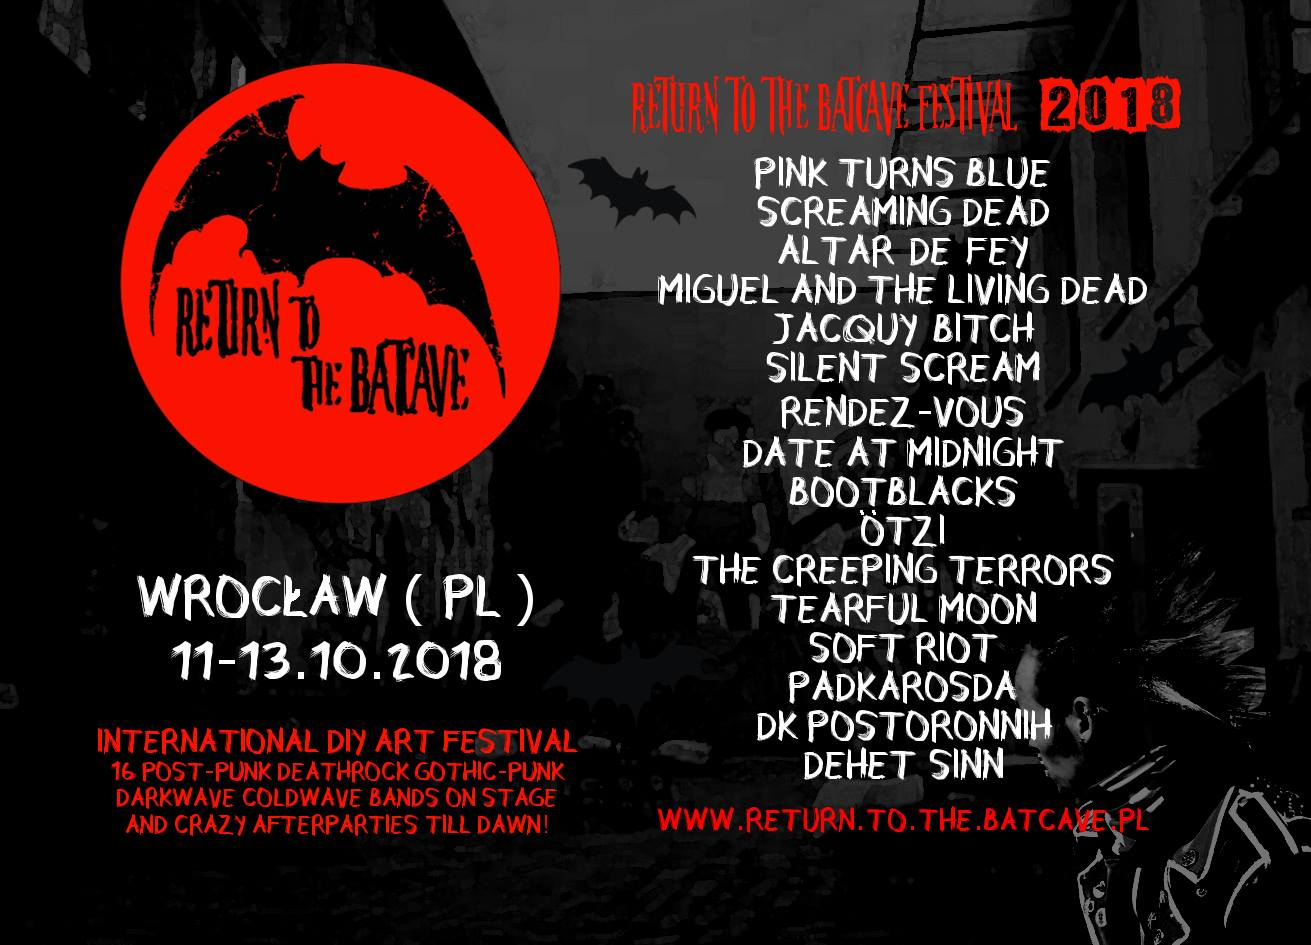 Return To The Batcave Festival 2018